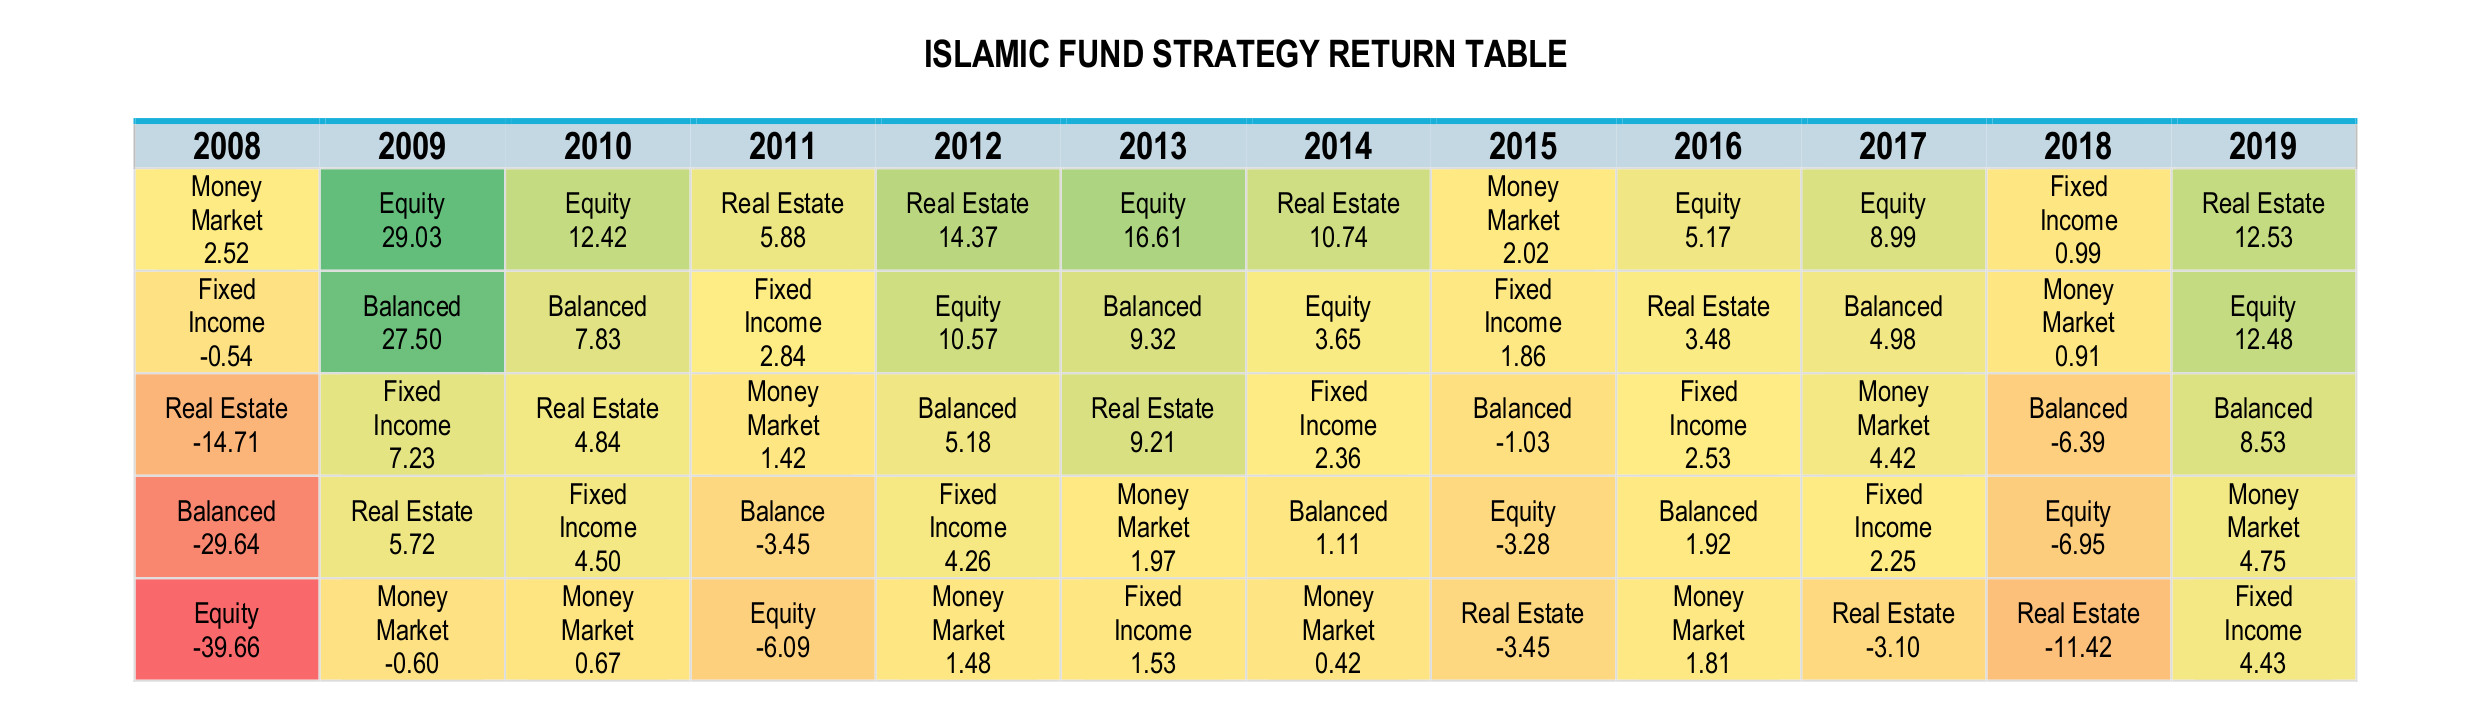 Islamic Hedge Funds Infographic February 2020 - Strategy Return Table